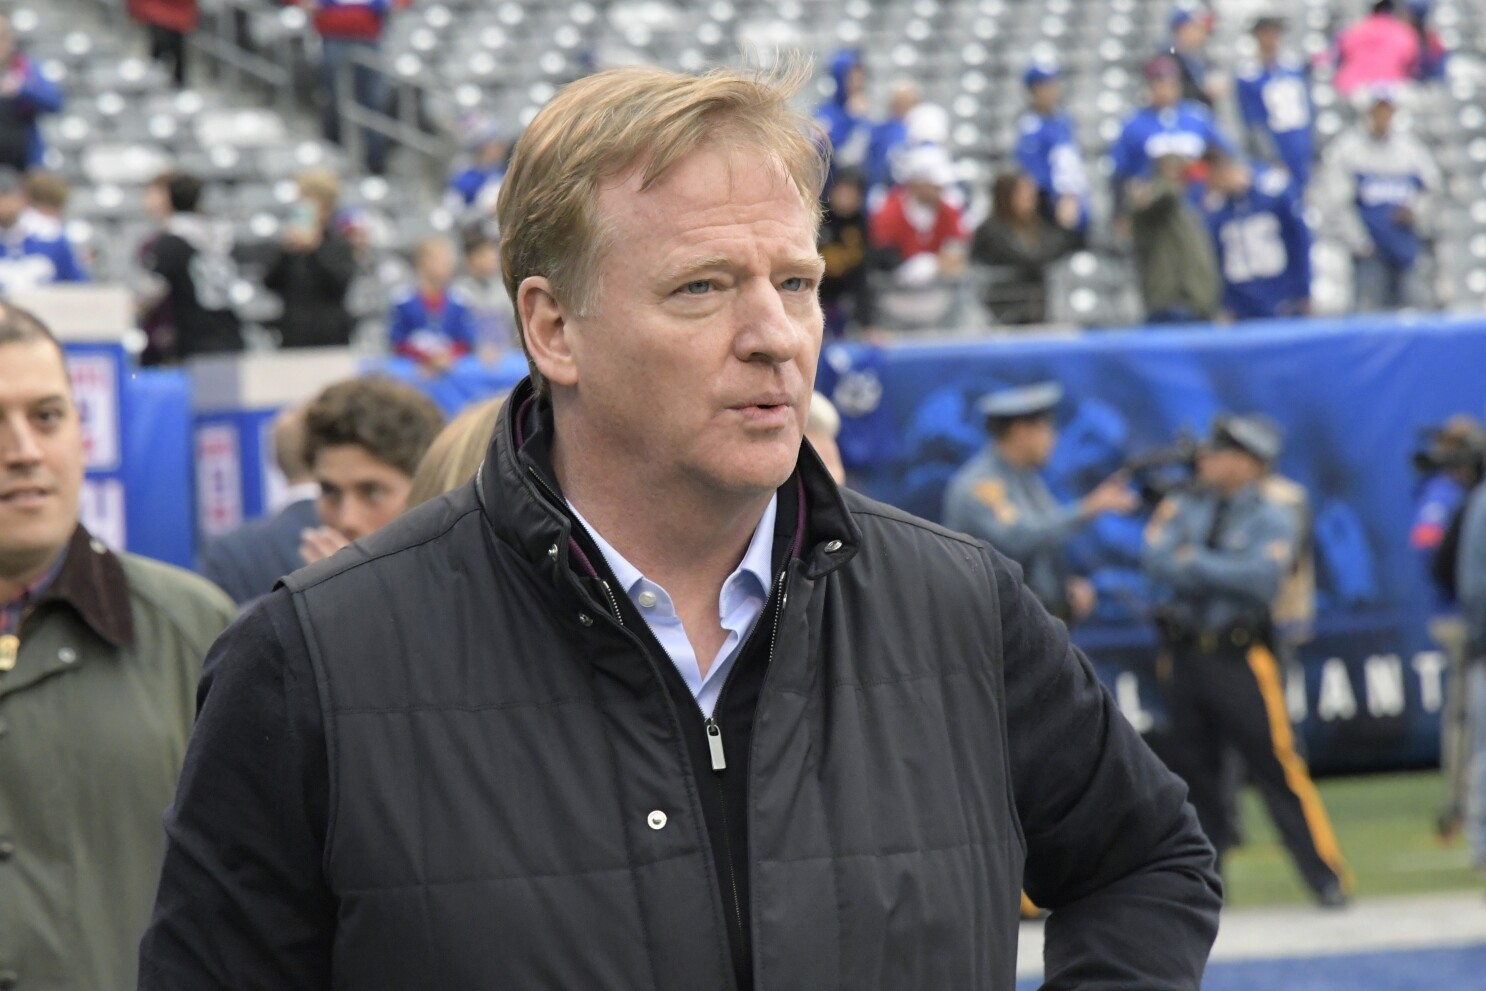 Nfl Coronavirus Protocol Violations Could Result In Forfeits Los Angeles Times